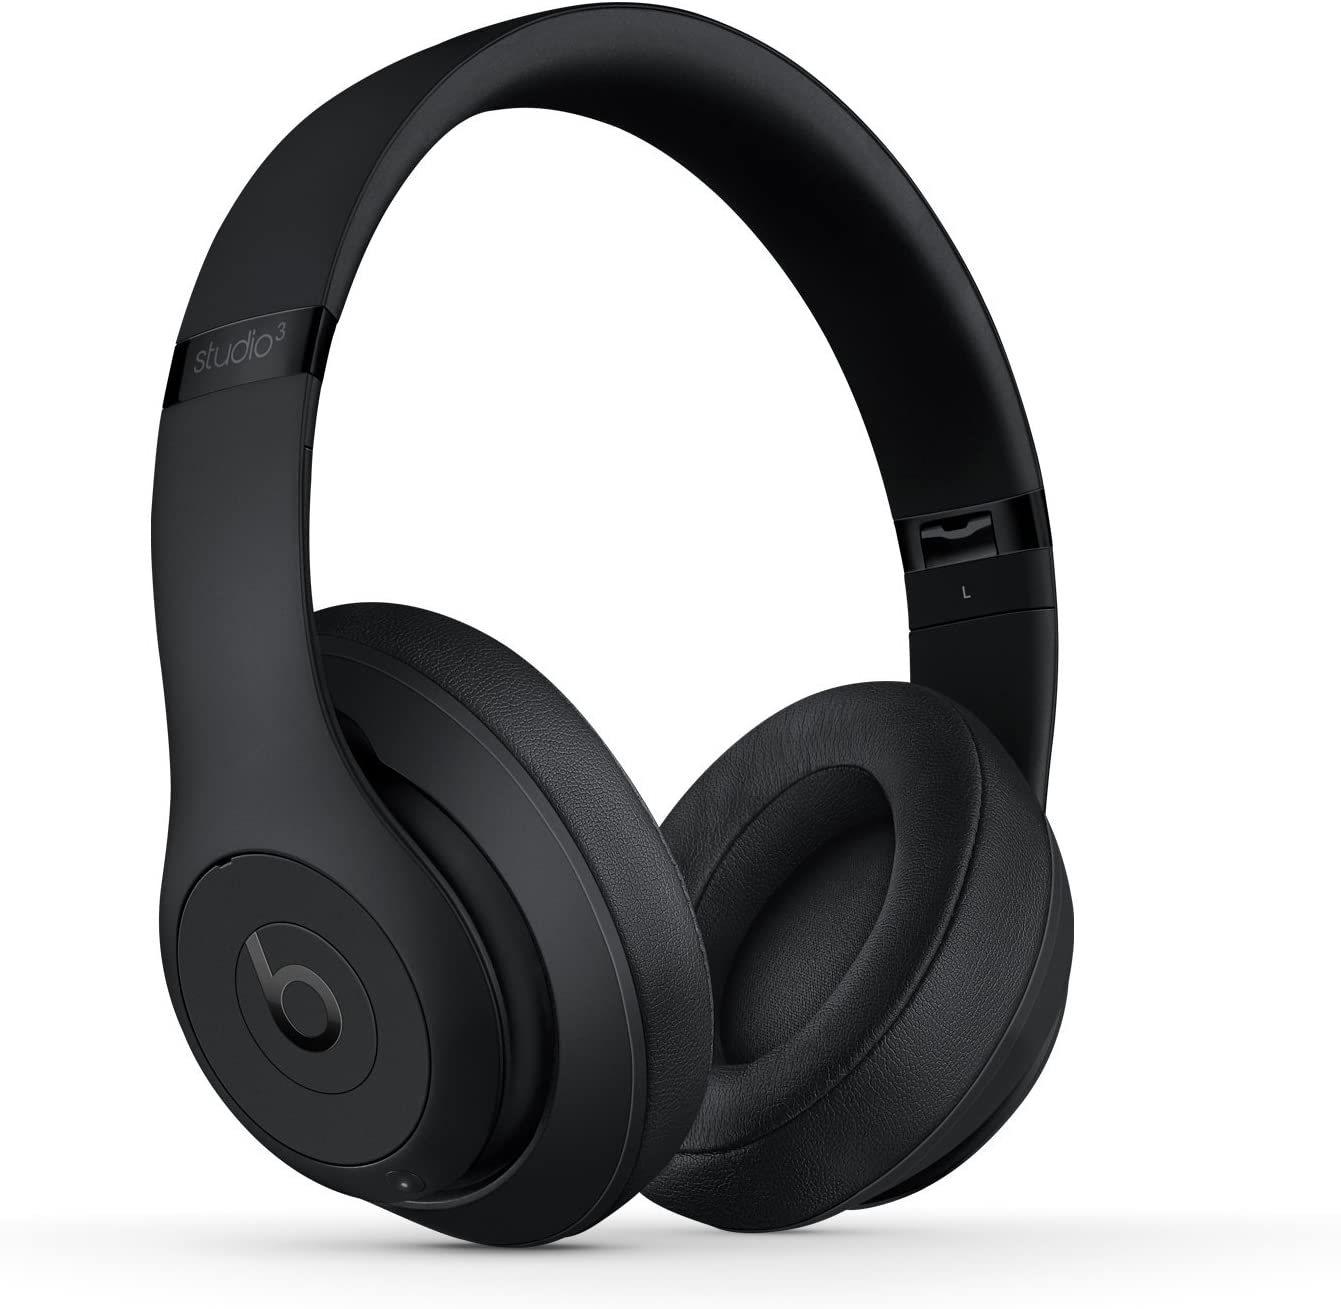 B079TLV1WW Beats Studio3 Wireless Headphones - Matte Black (Renewed) 71BdCOunW4L